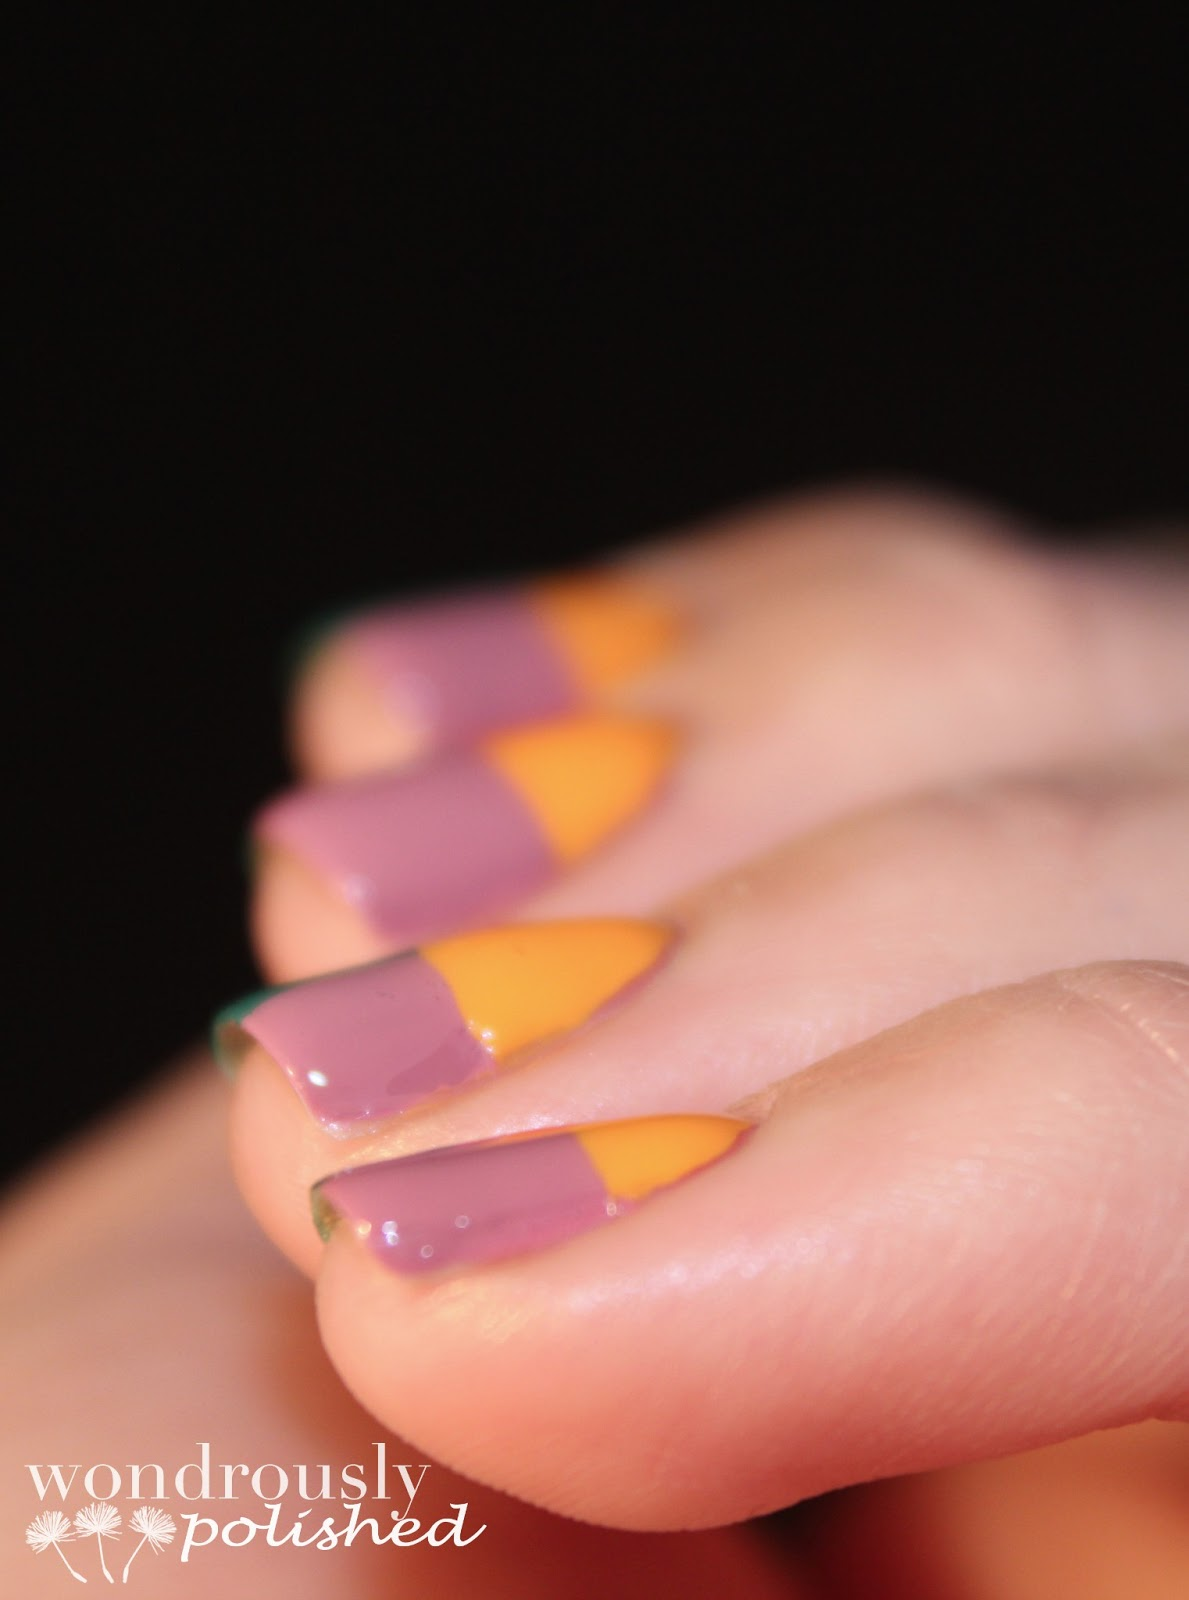 Wondrously Polished February Nail Art Challenge: Wondrously Polished: Julep Color Blocking